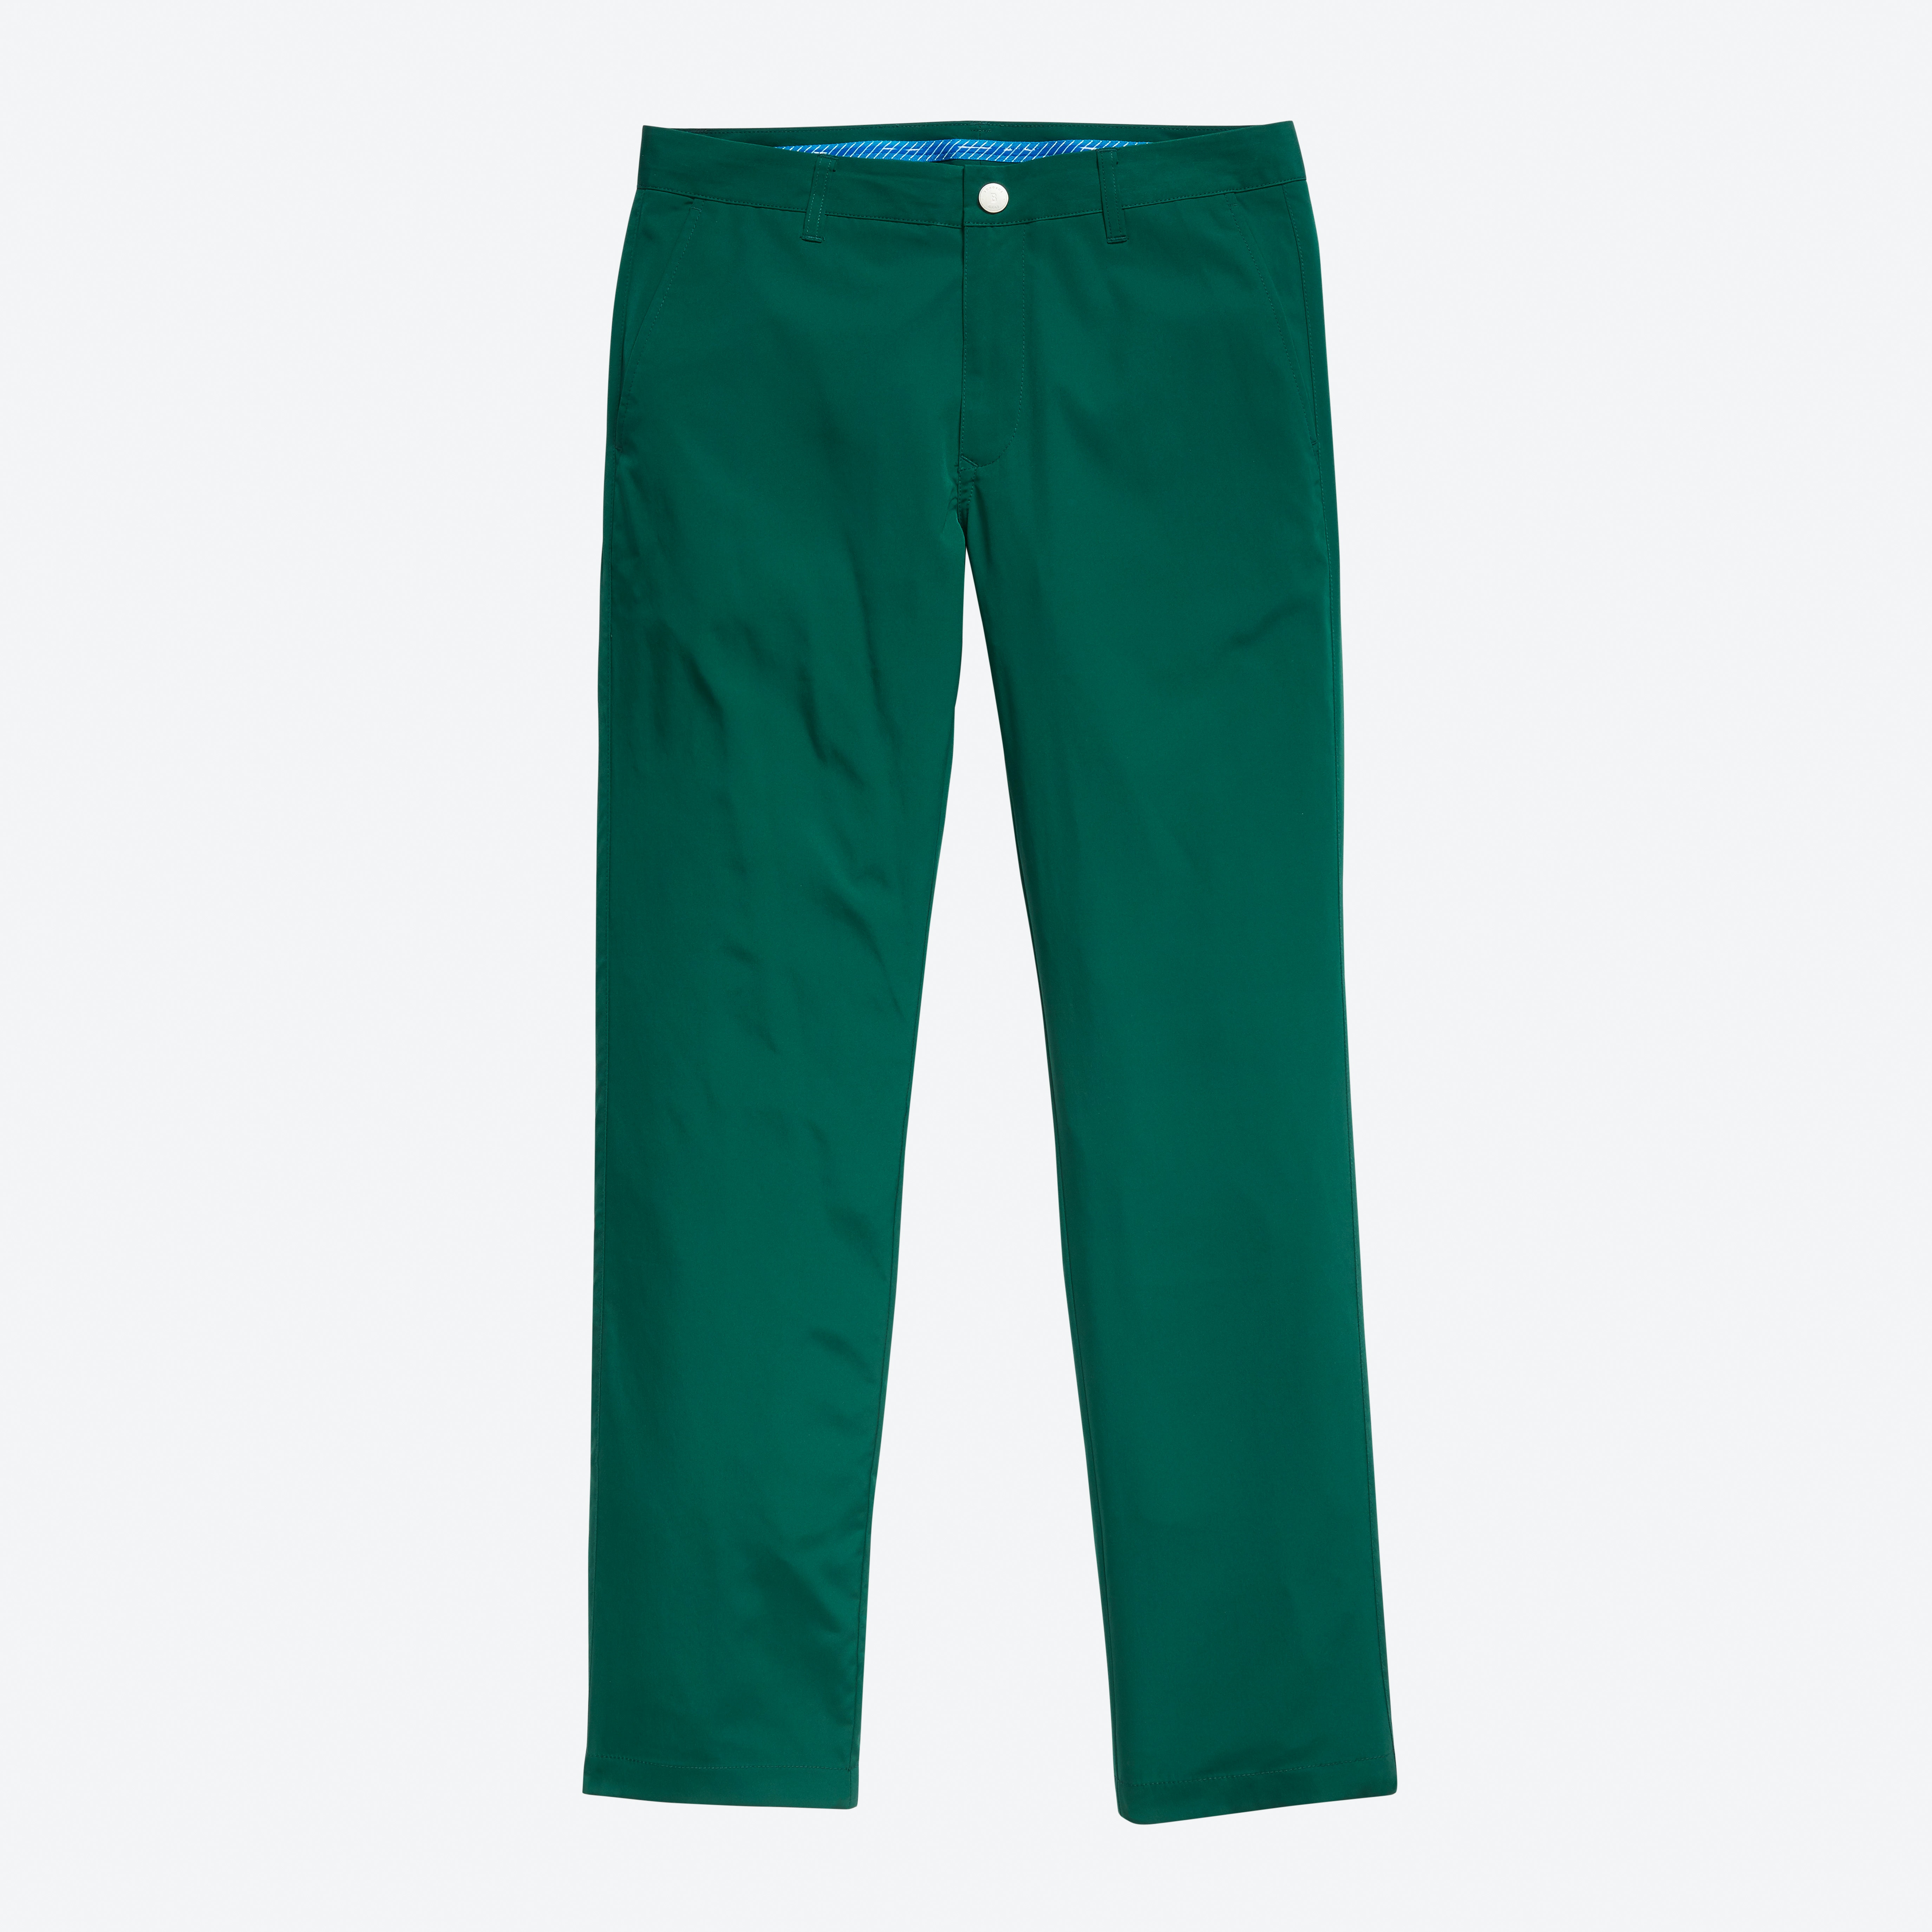 Highland Lightweight Golf Pants